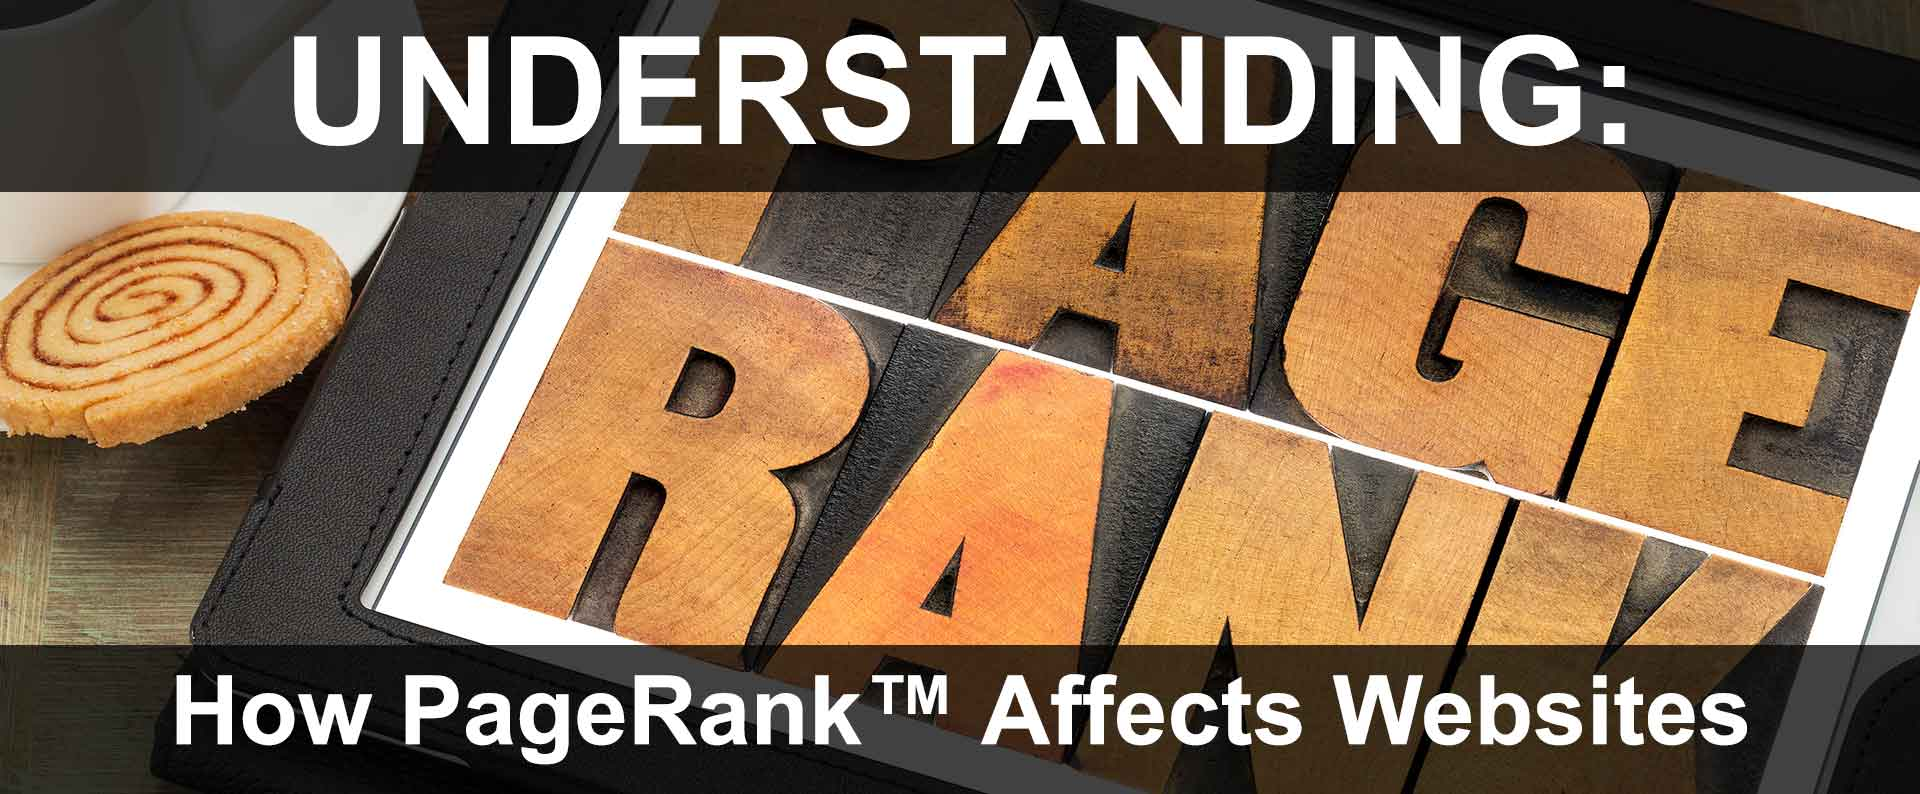 Understanding How PageRank™ Affects Websites